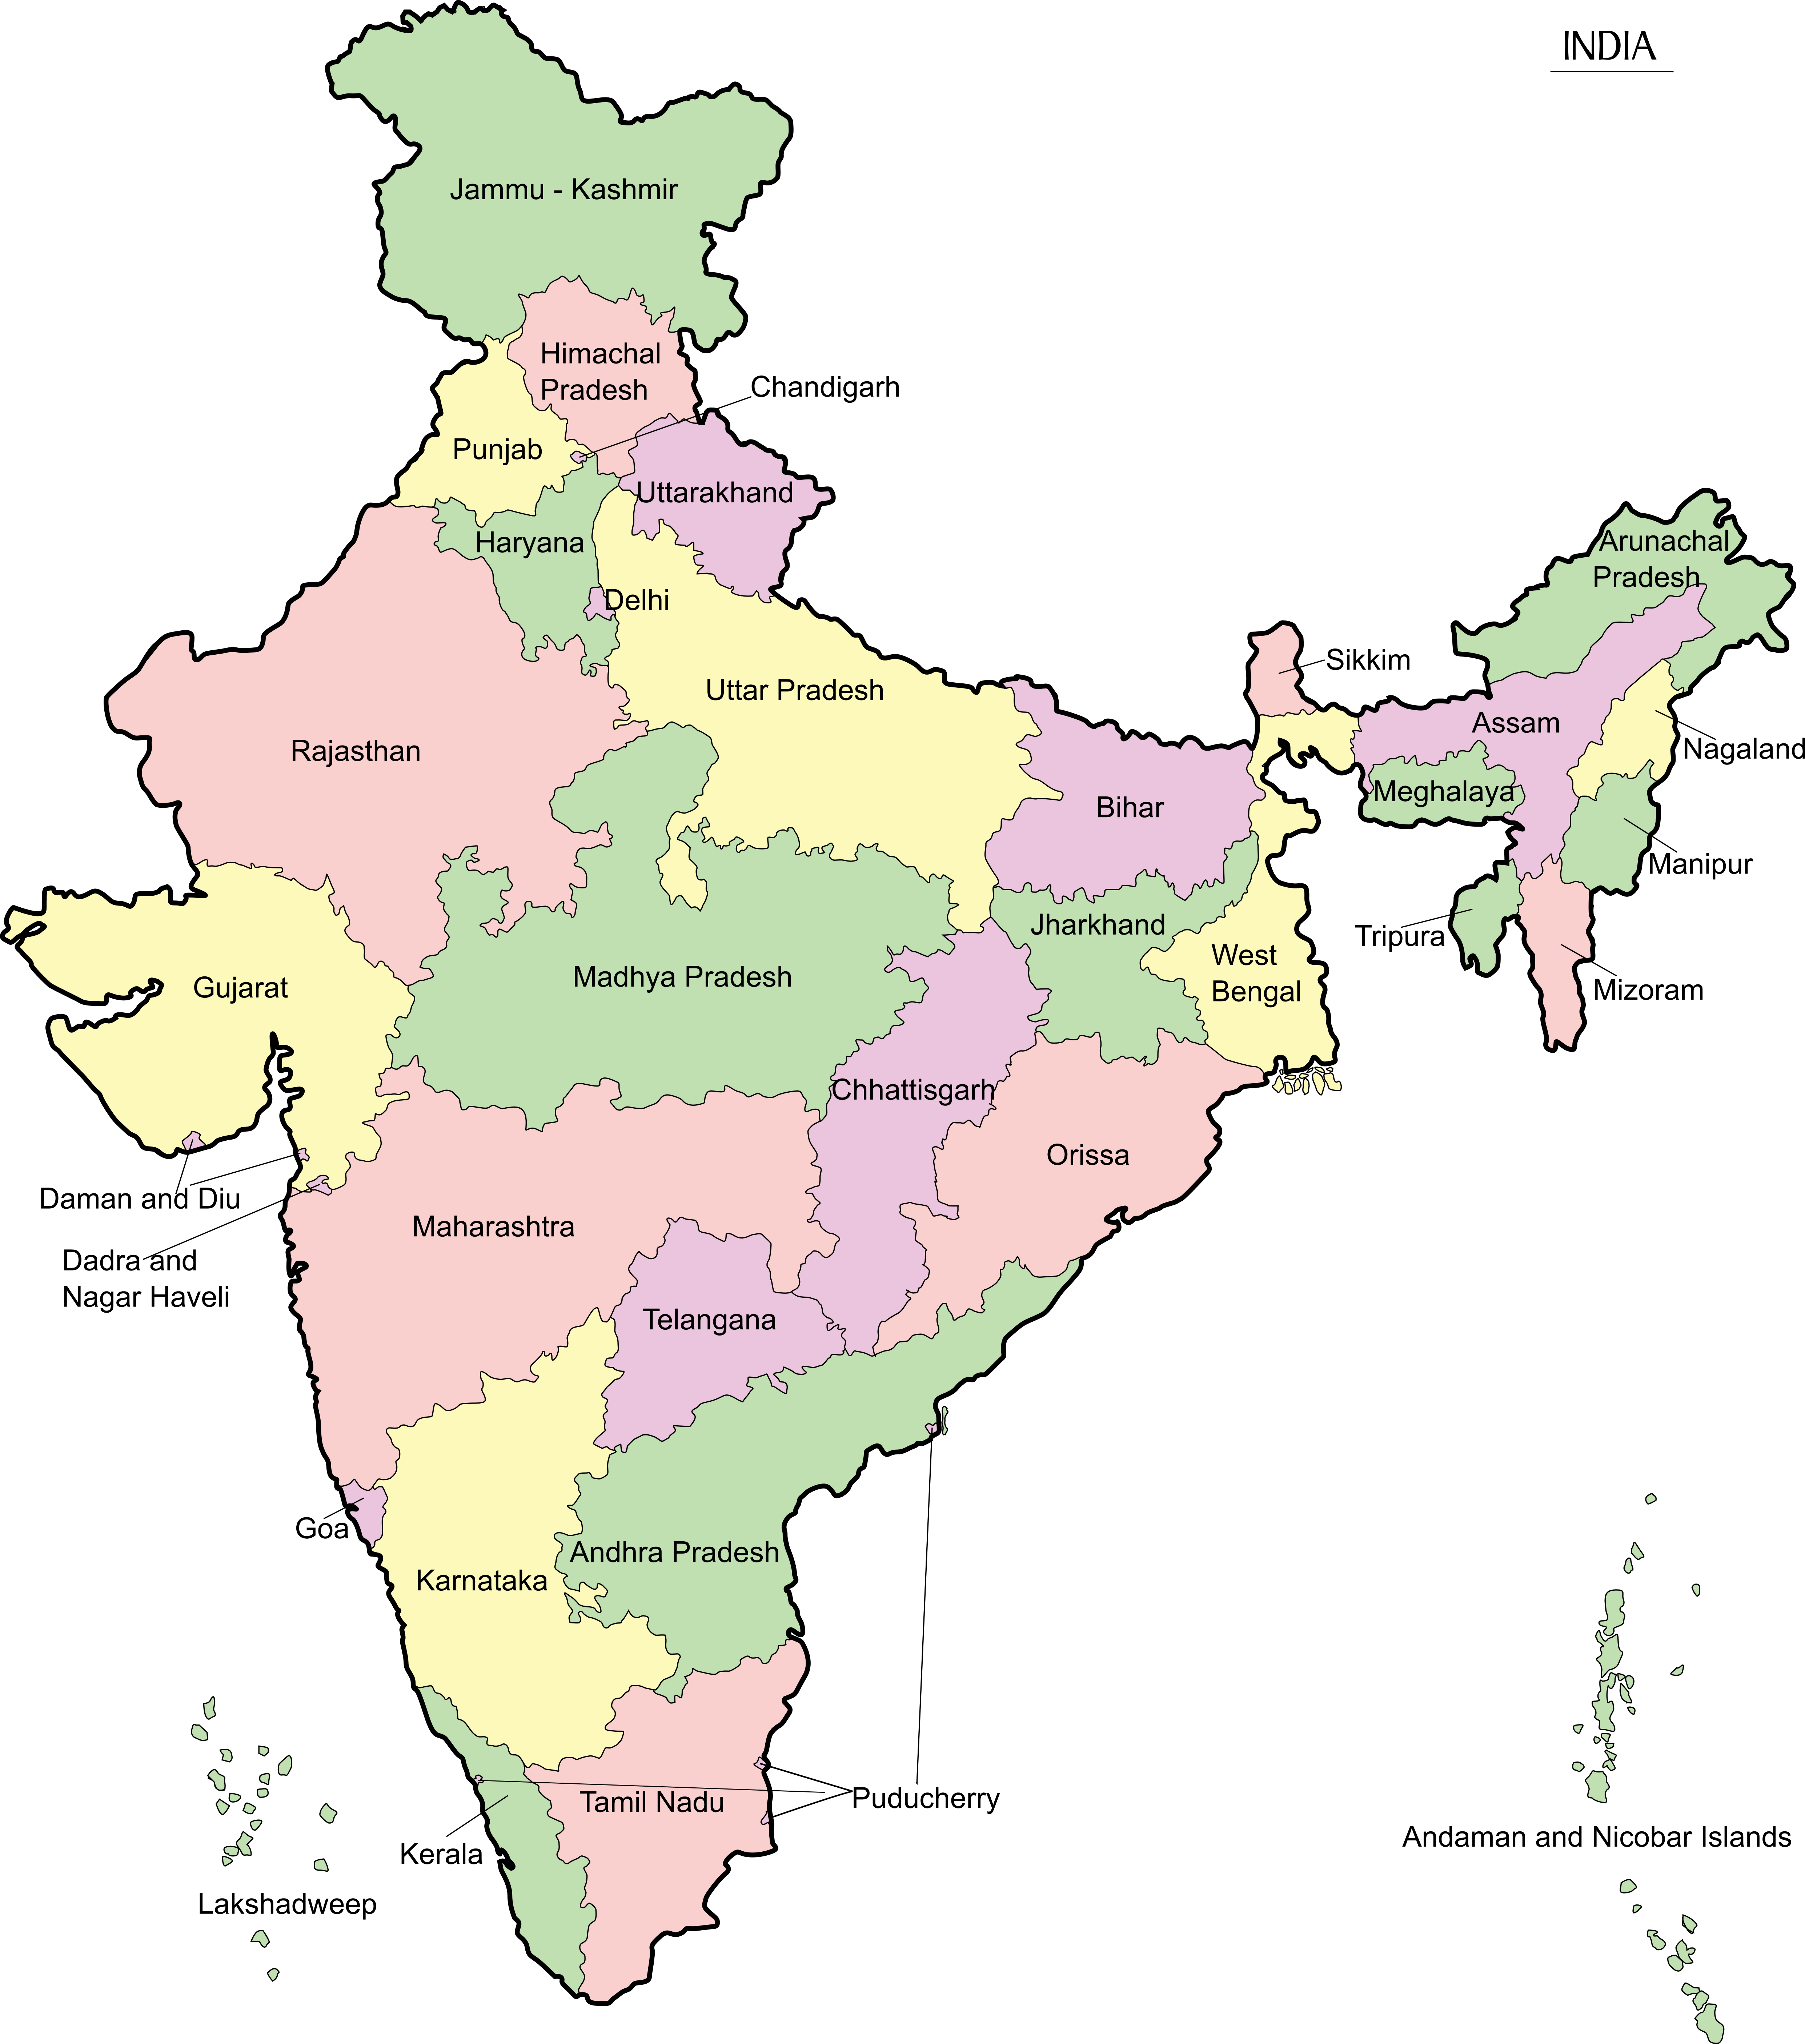 Png fileindiamapenpng wikimedia commons. India clipart map bharat